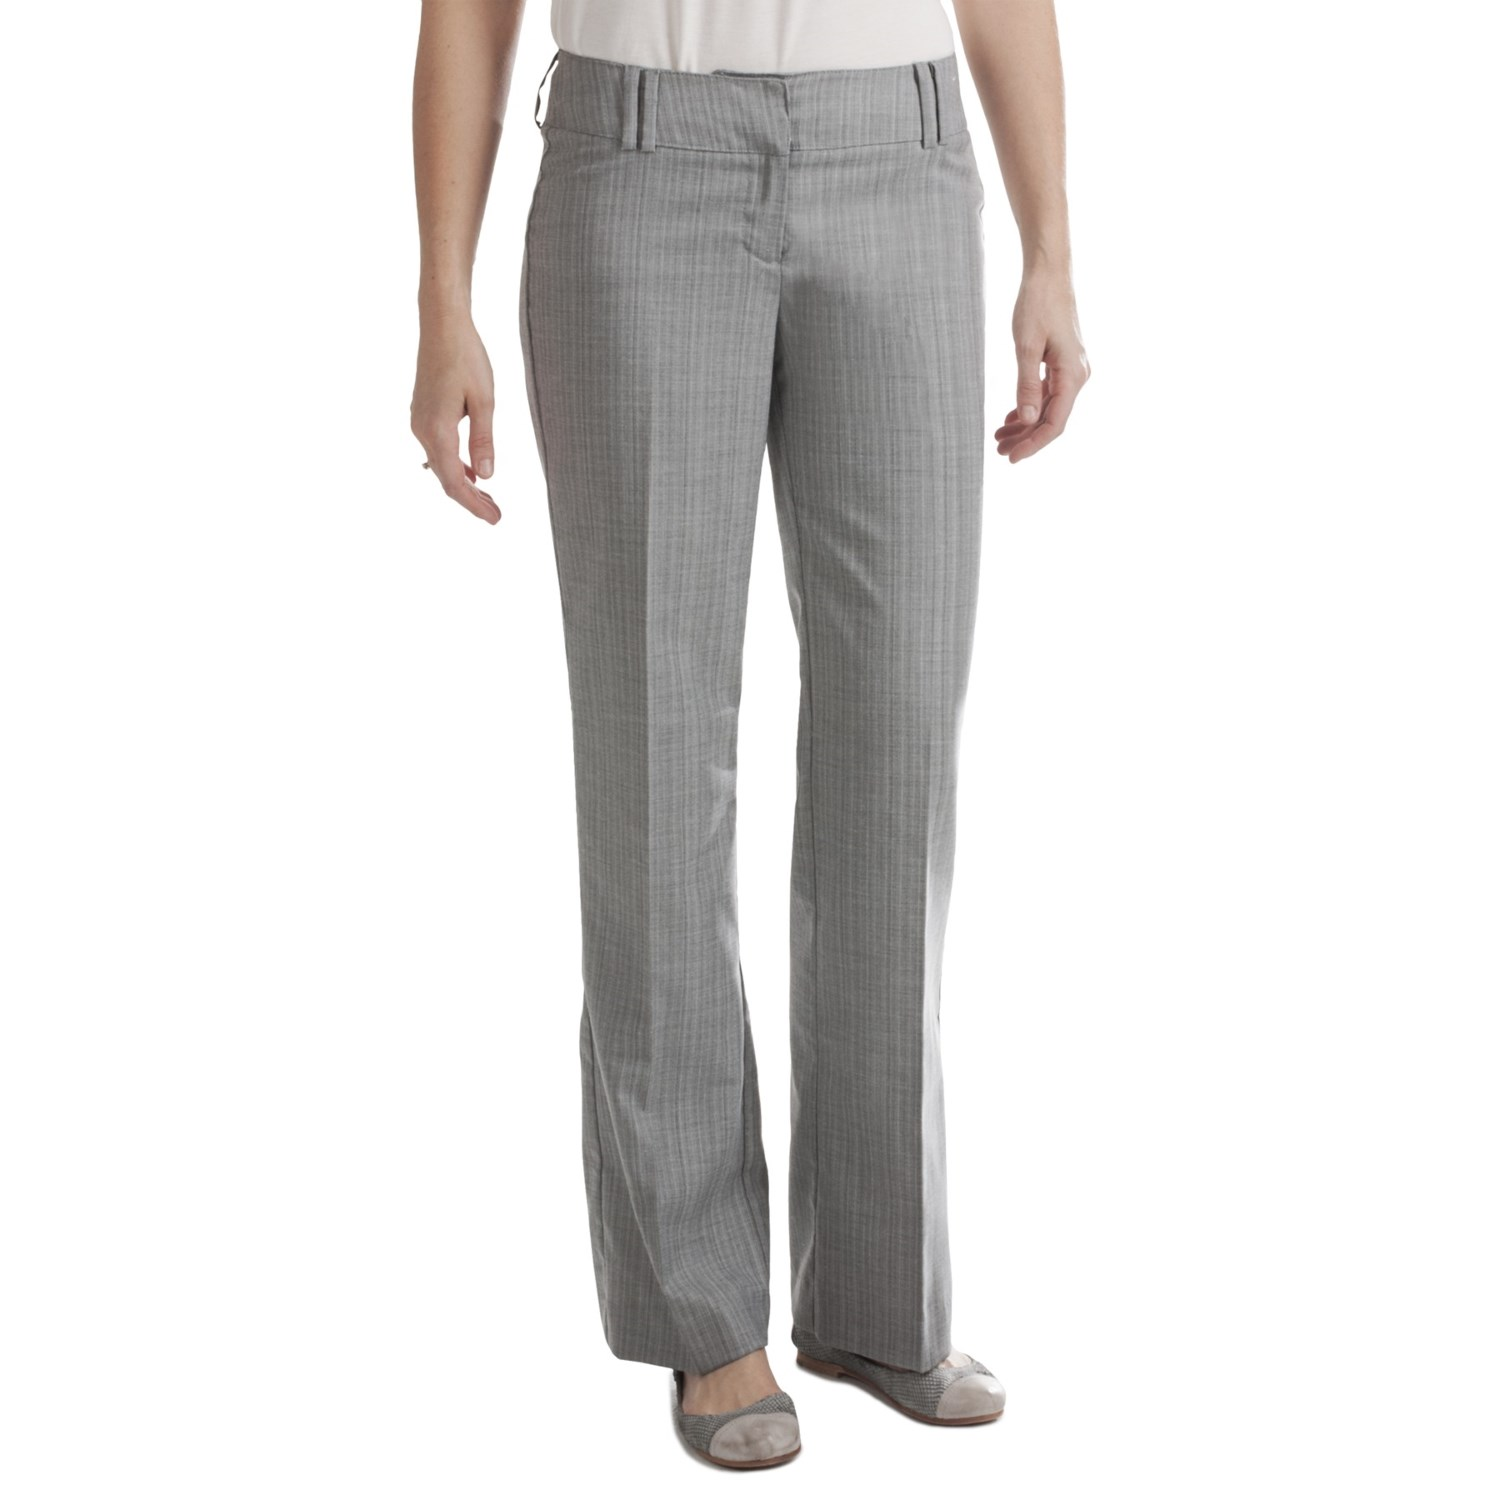 Browse the latest styles of men's dress pants at Stein Mart. Shop men's brand name trousers, chinos, & slacks for a handsome look for less! Pants. Underwear & Socks. Added to your bag. Your shopping basket is empty. Men's Pants. Sort By.